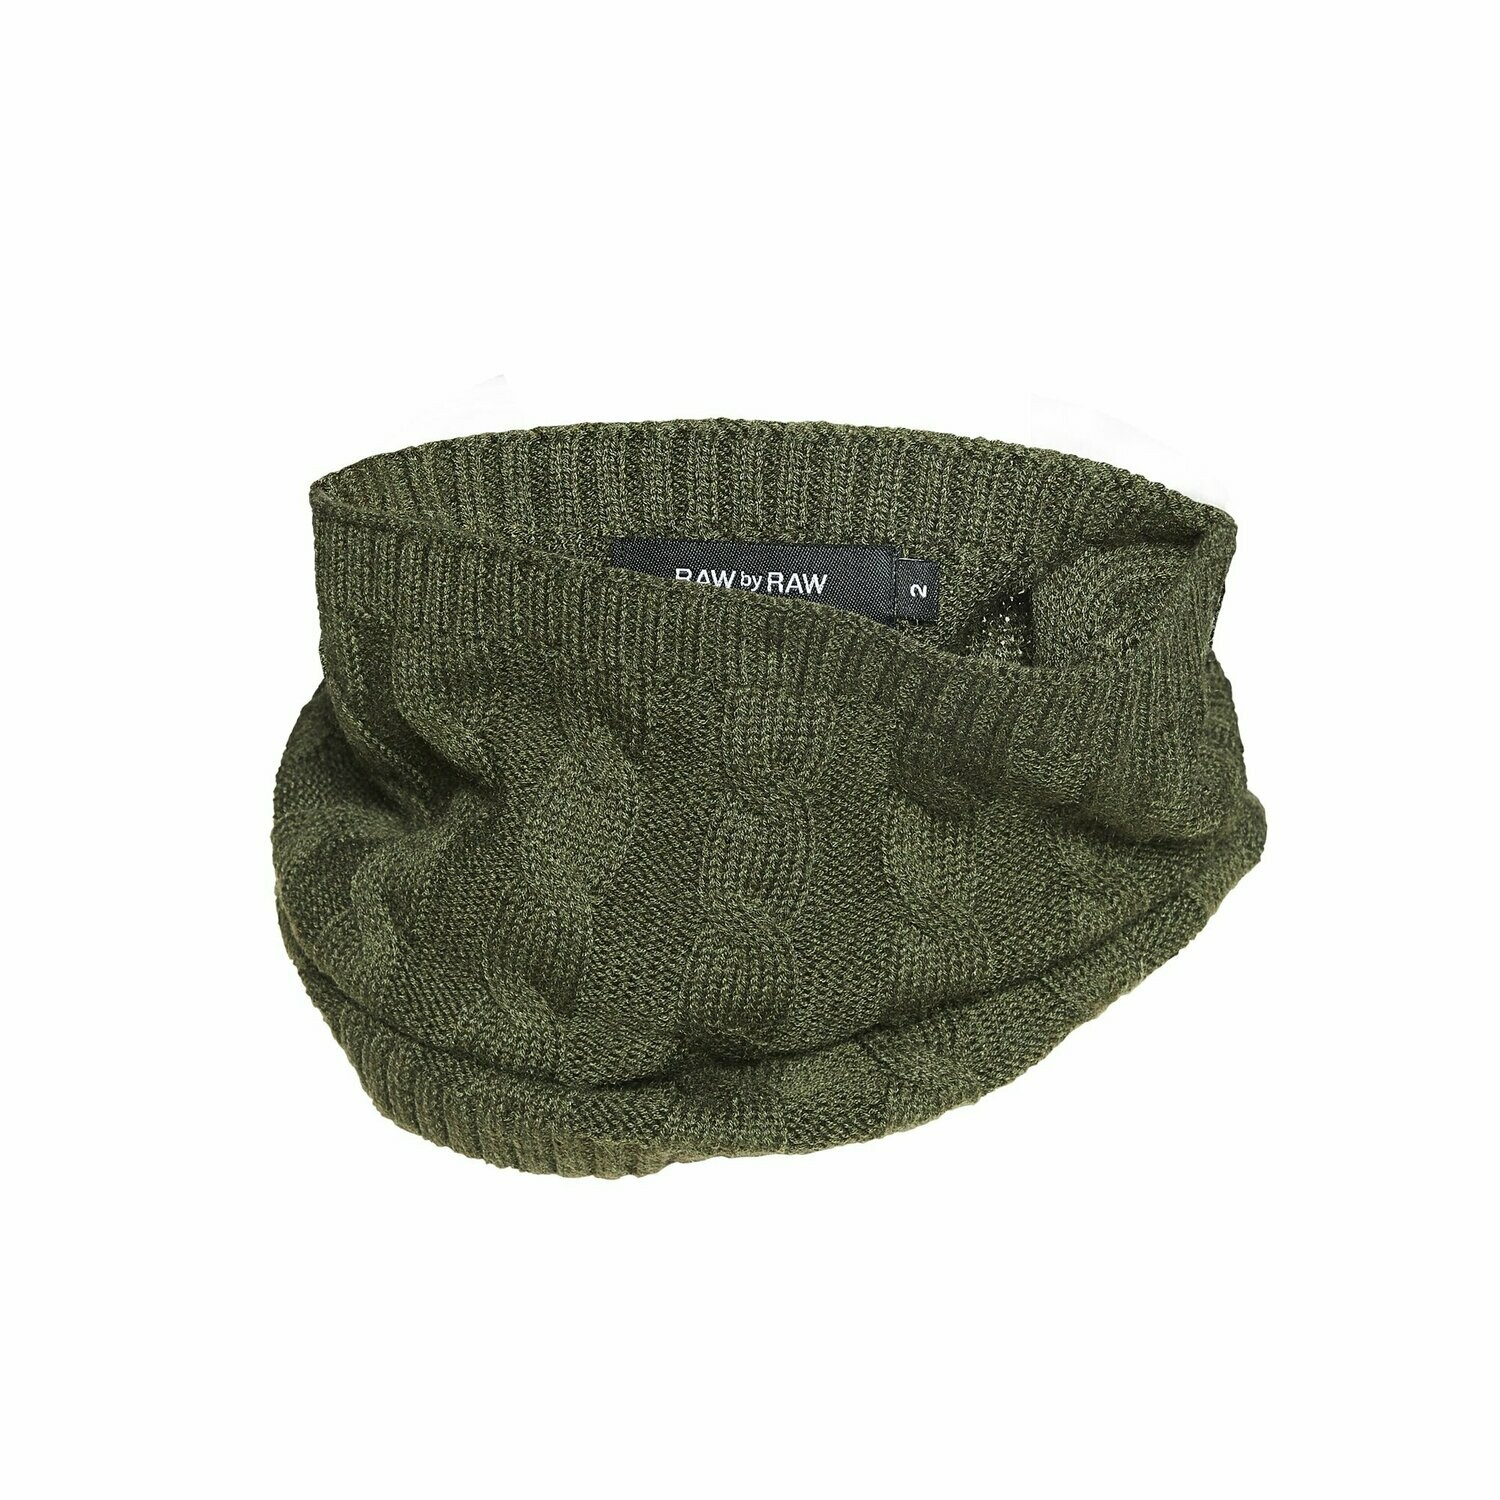 Raw By Raw - Mickey Snood Autumn leaves